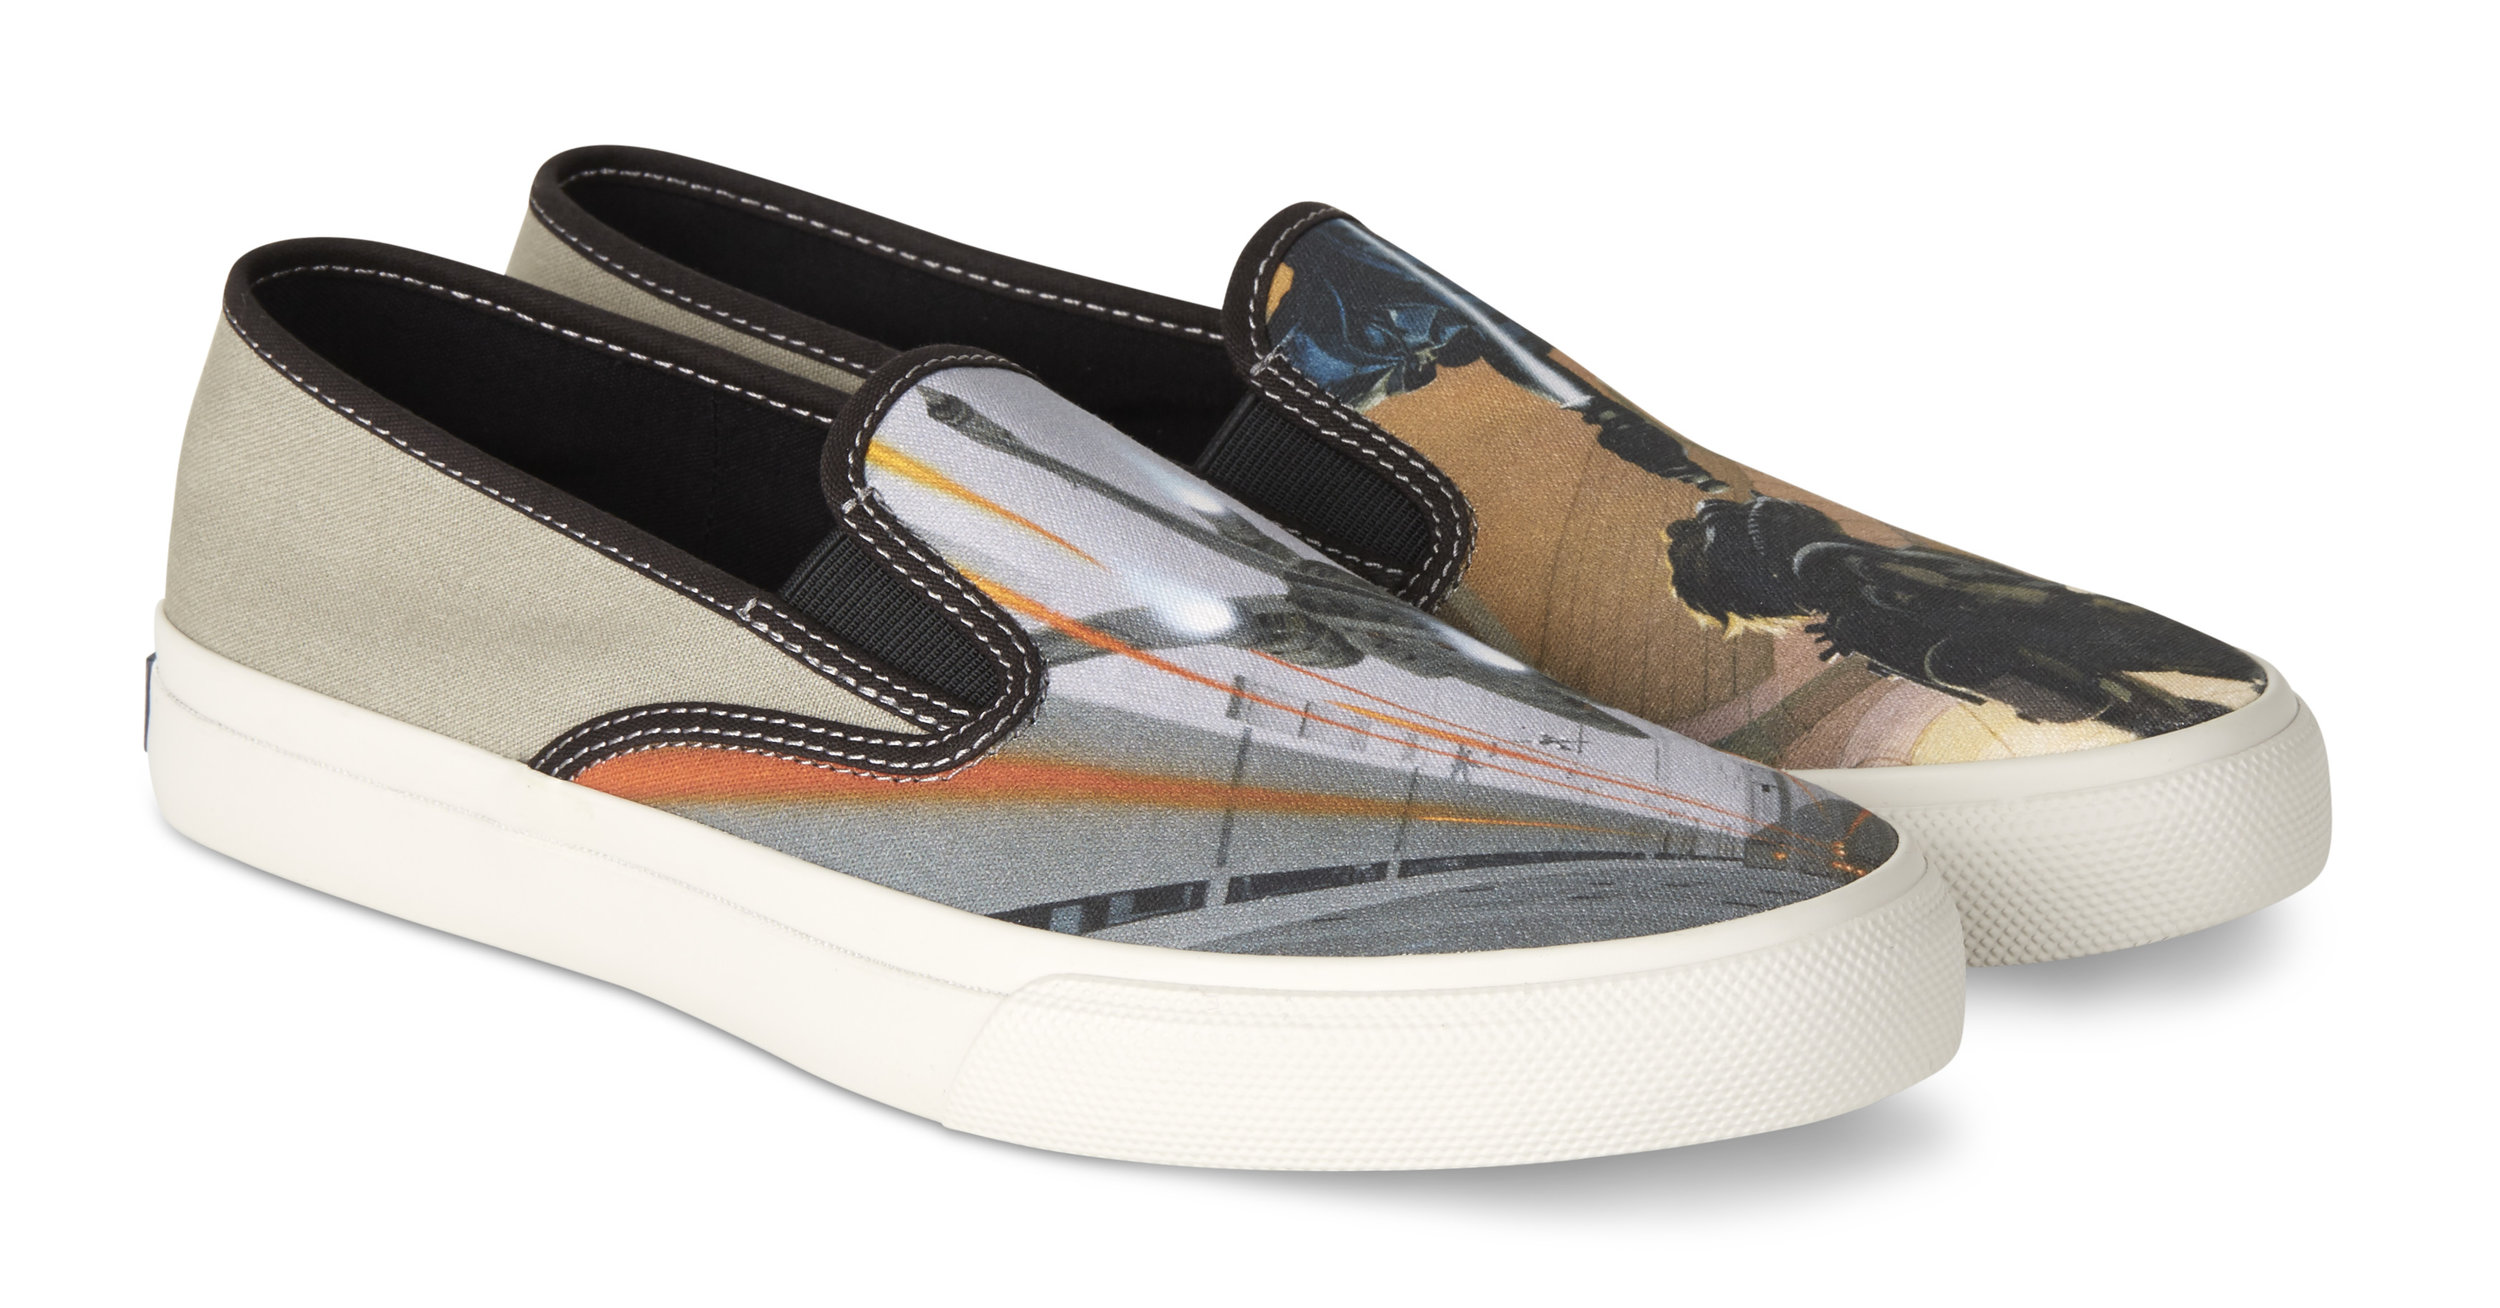 check-out-this-cool-line-of-star-wars-themed-shoes-from-sperry3.jpg